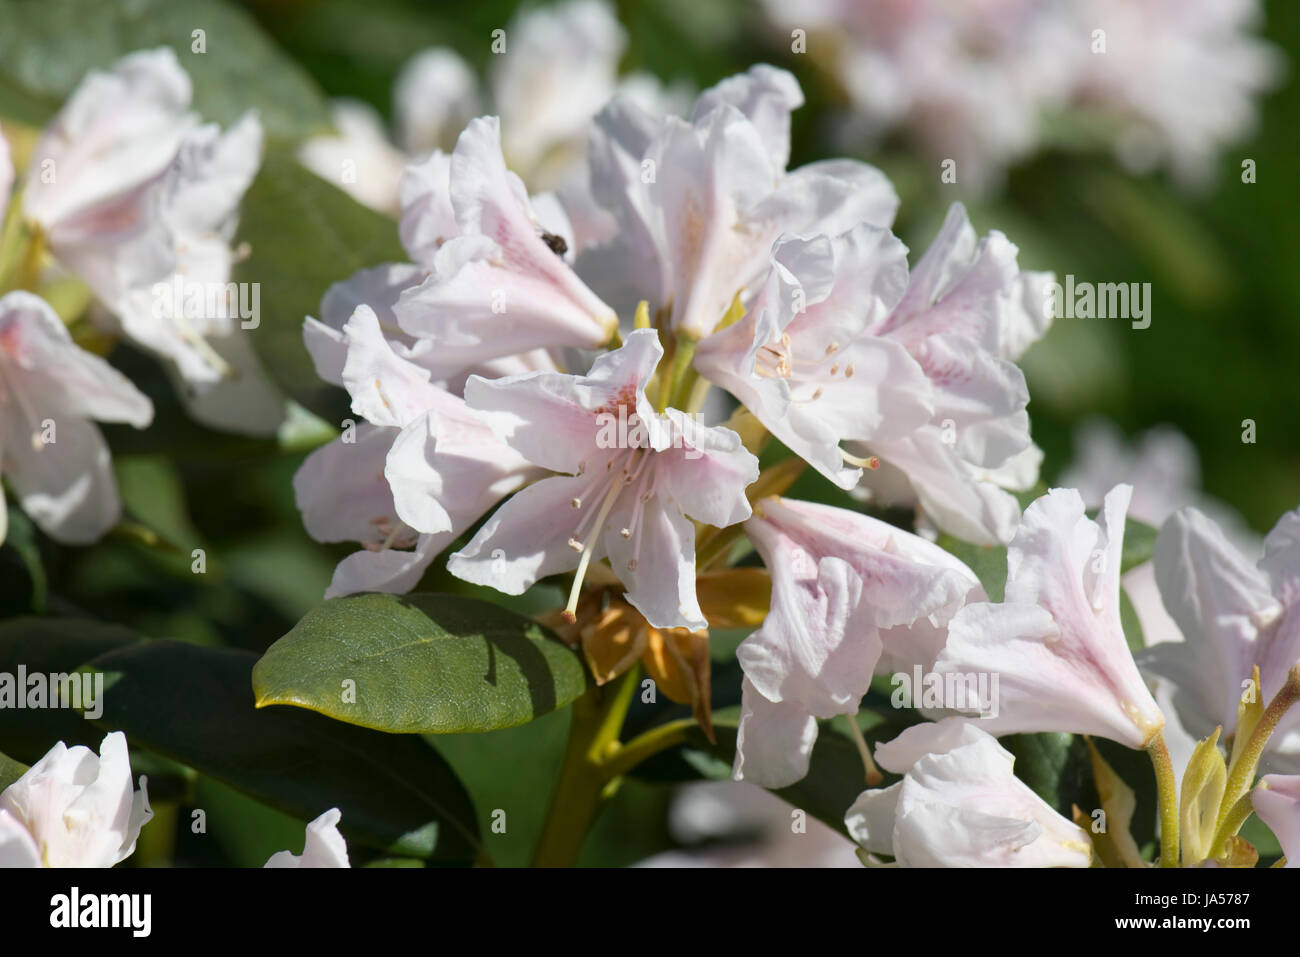 Flowers and leaves on Rhododendron 'Cunningham White', slight pink flowers on this spring flowerinf ericaceous - Stock Image